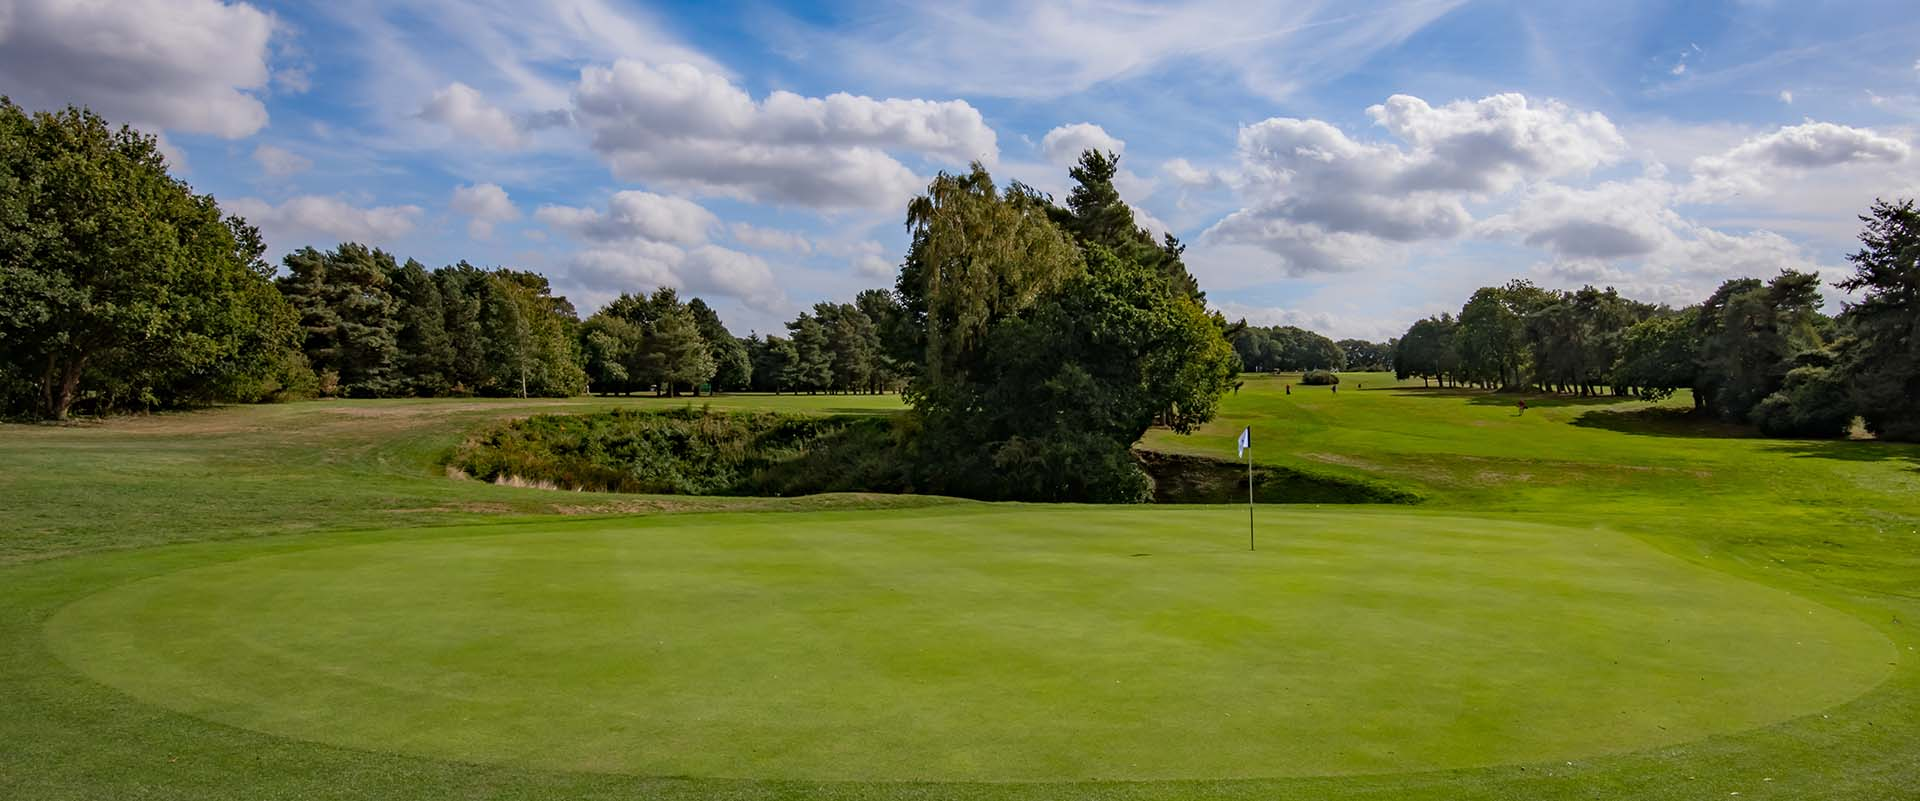 Royal Norwich green at Hellesdon course